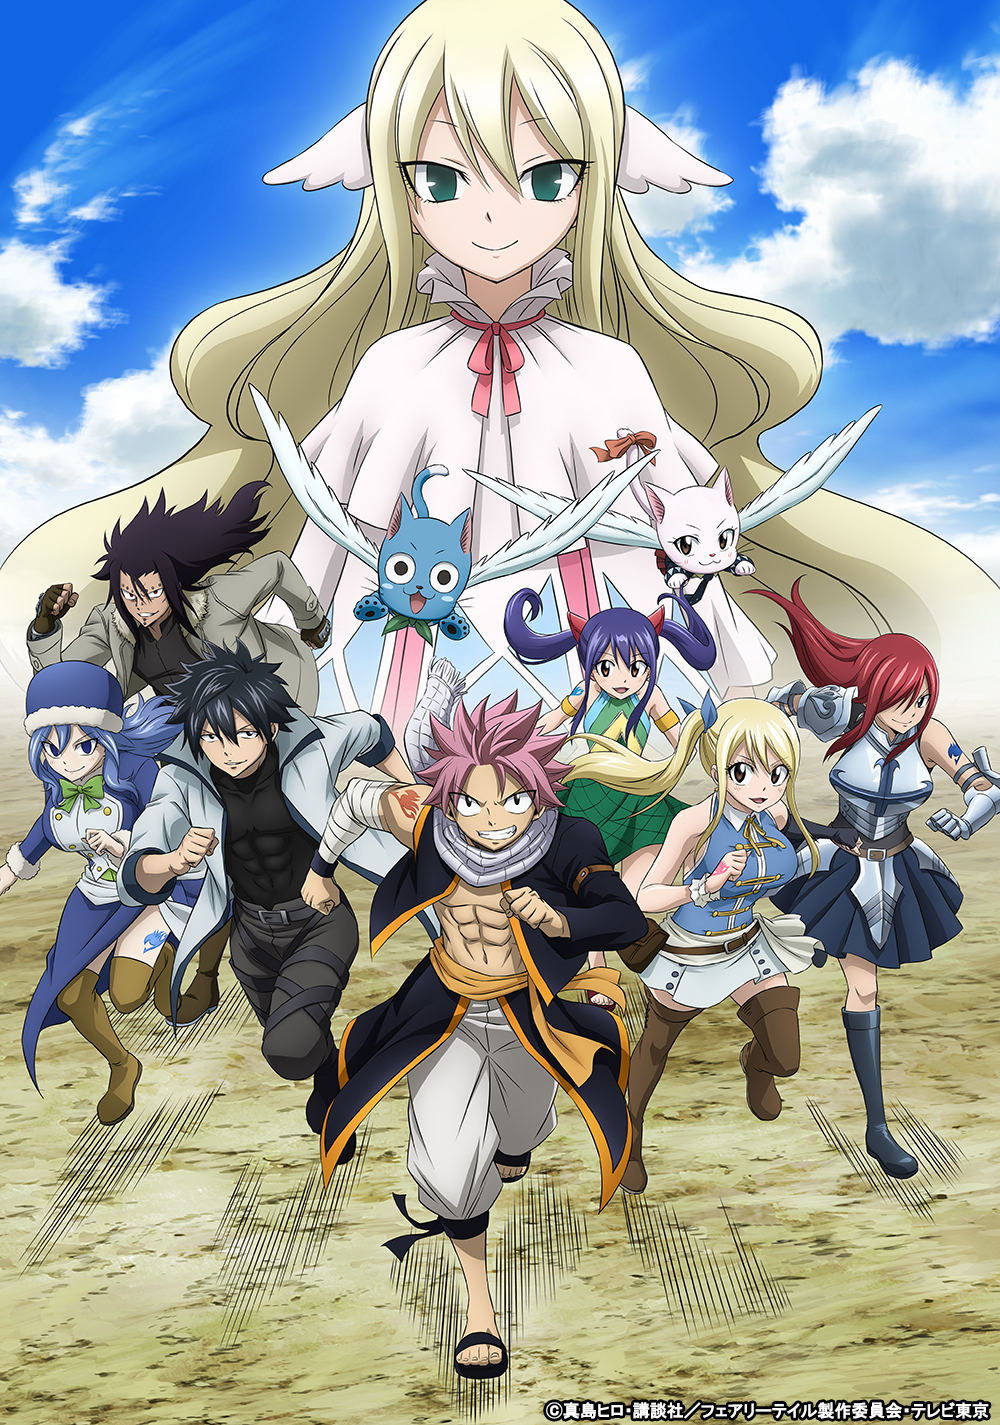 New Fairy Tail Opening Theme No Limit To Be Performed By Osaka